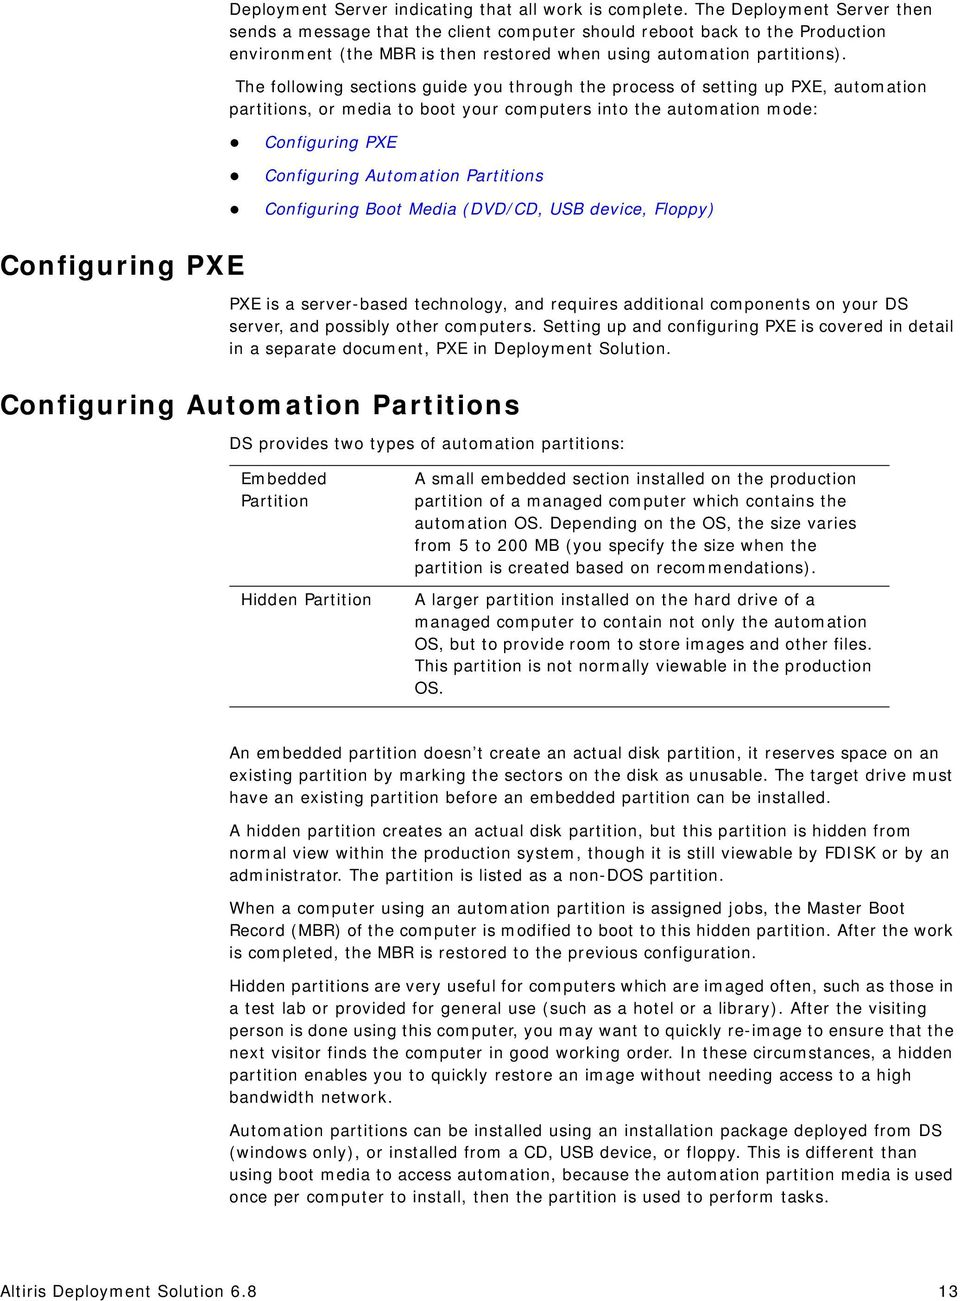 The following sections guide you through the process of setting up PXE, automation partitions, or media to boot your computers into the automation mode: Configuring PXE Configuring Automation